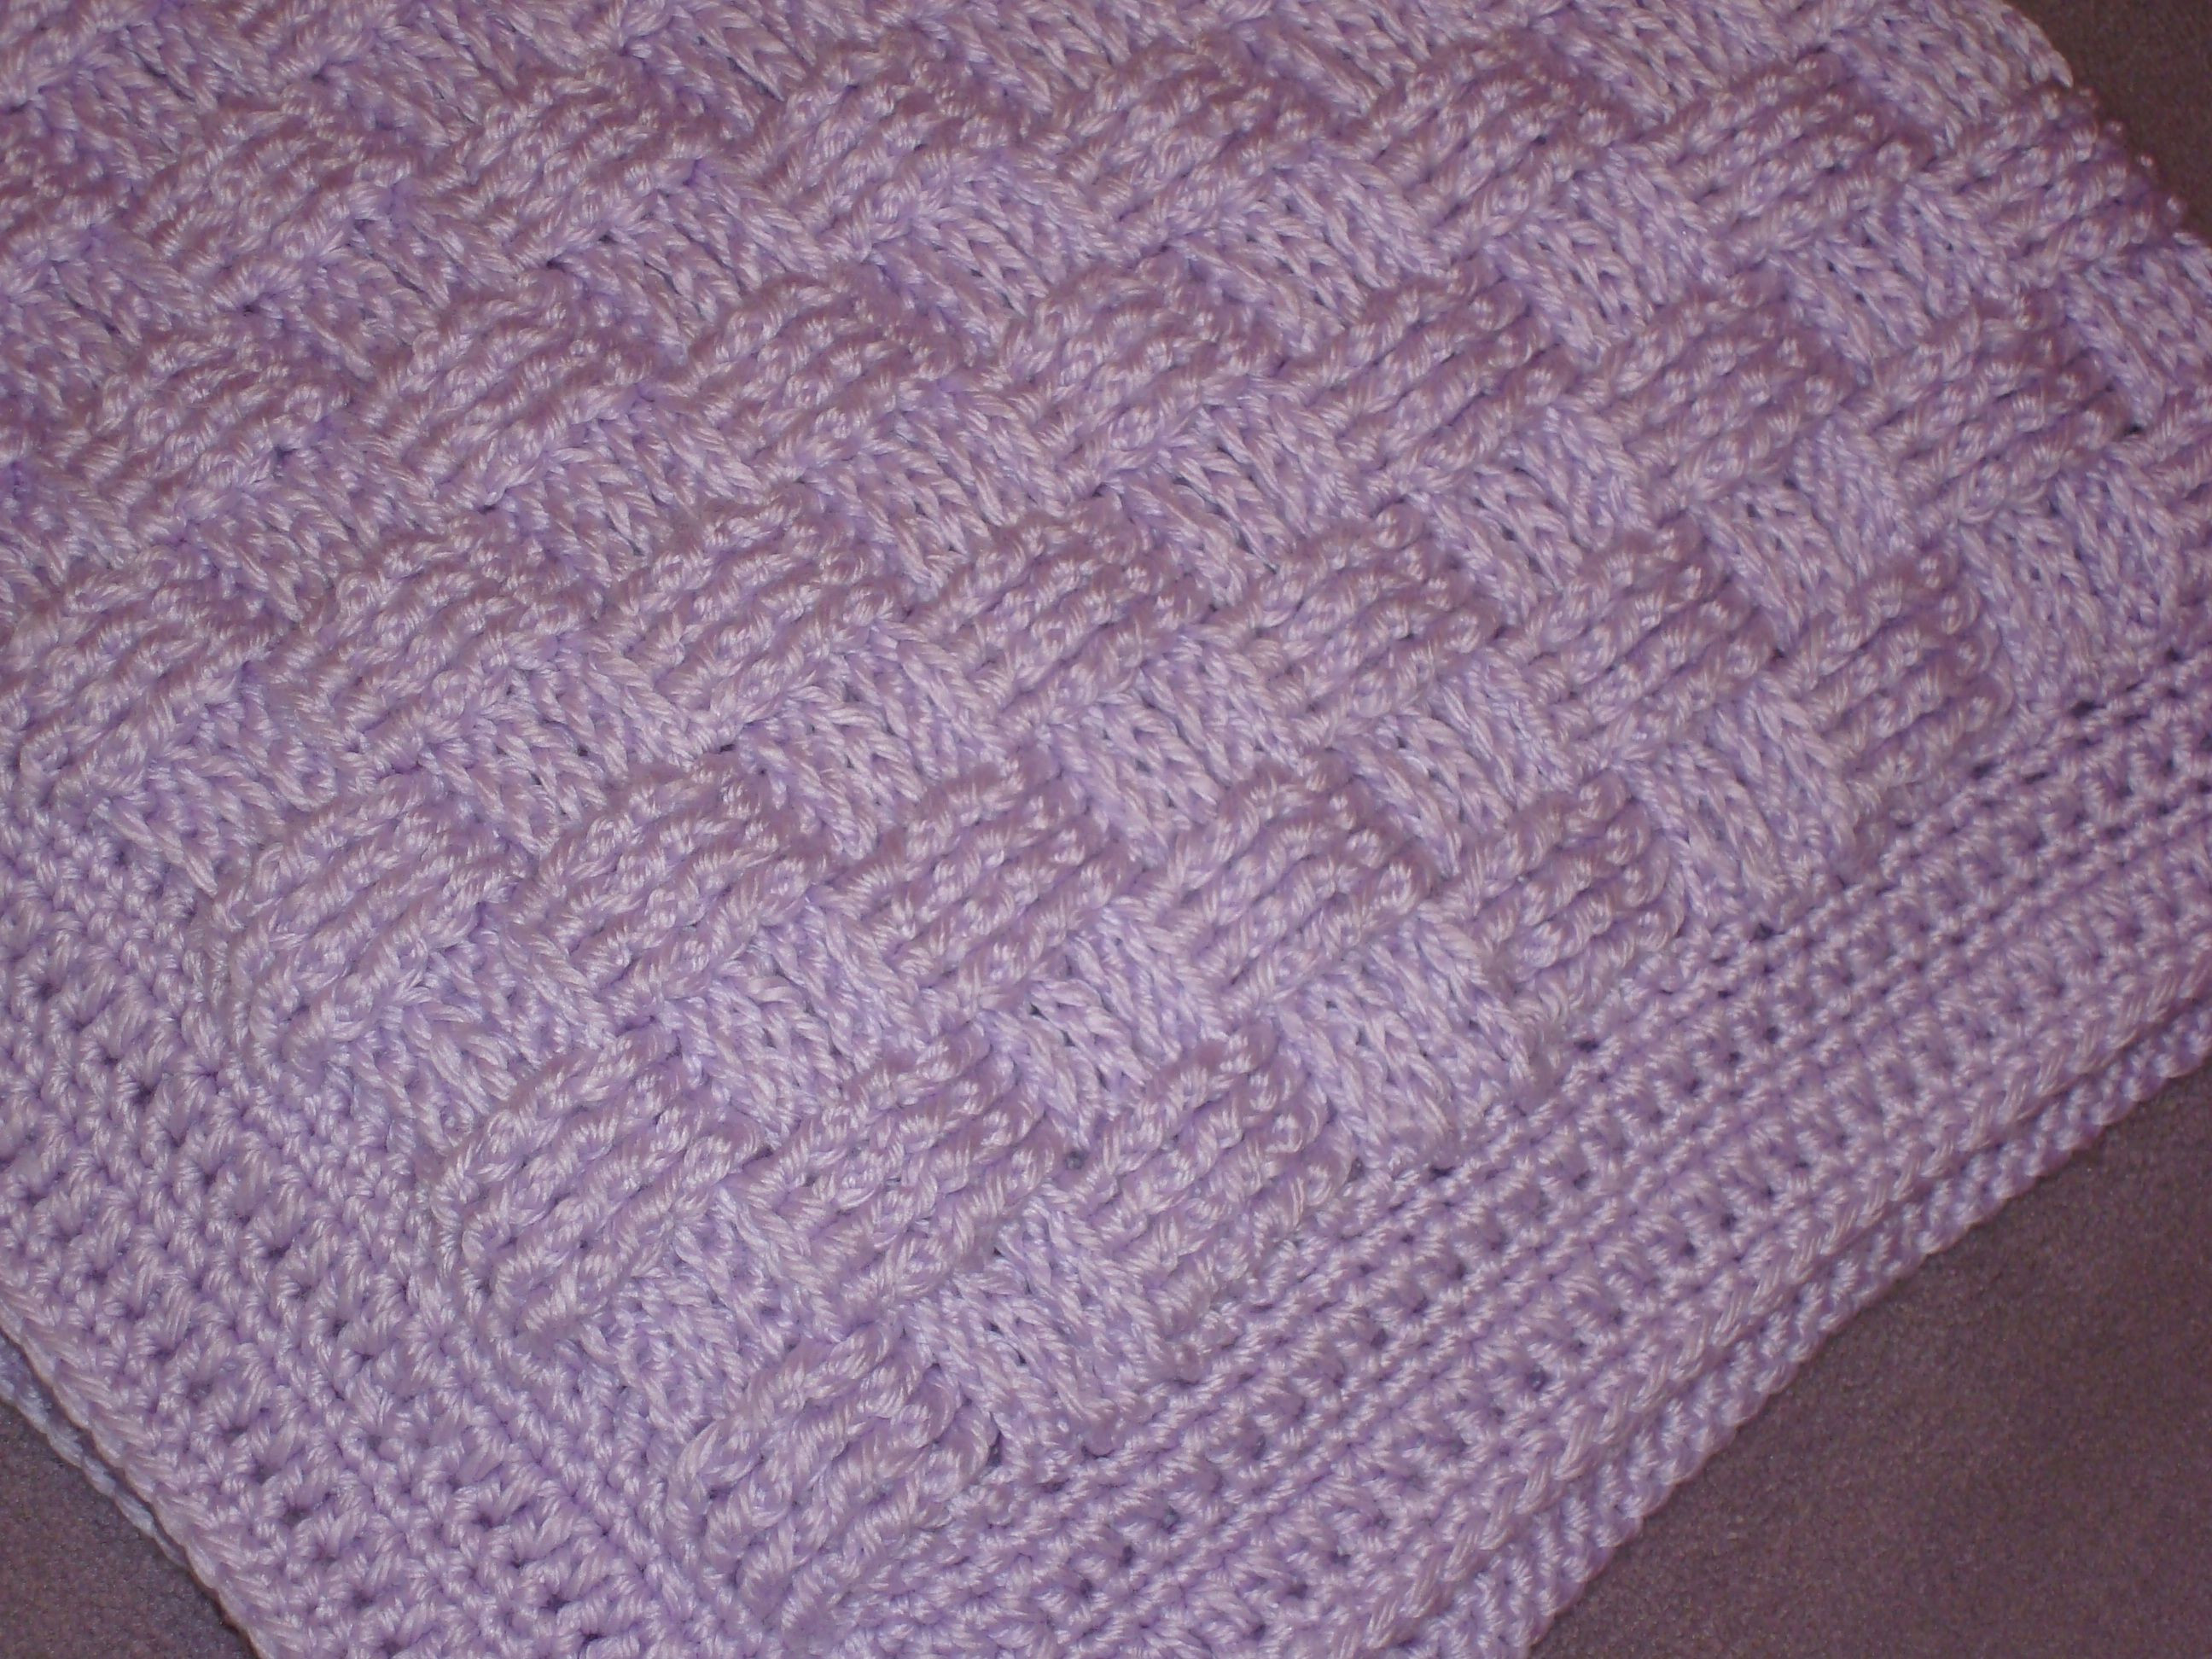 Awesome Cousin Crystal S Crocheted Basket Weave Baby Blanket Basket Weave Crochet Baby Blanket Of Brilliant 46 Photos Basket Weave Crochet Baby Blanket